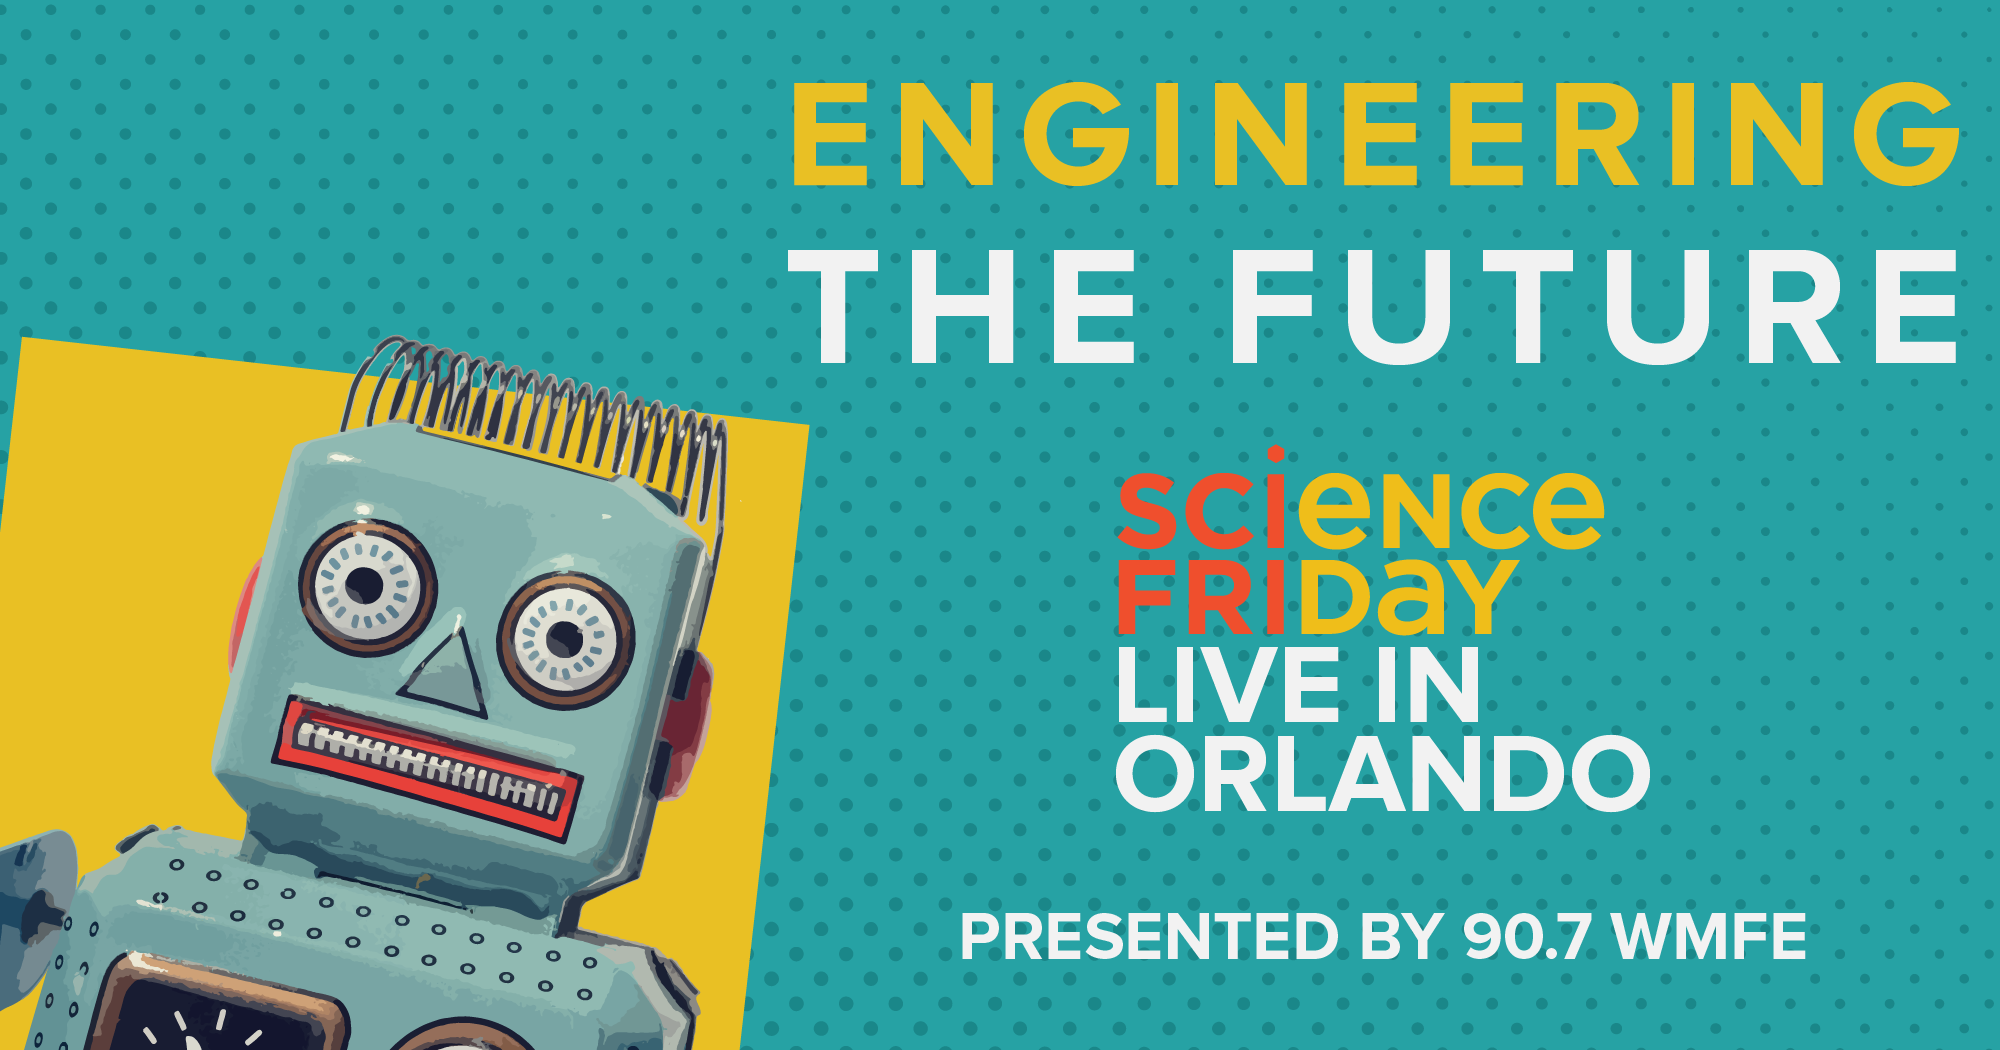 friday science orlando focused heads engineering tuesday future join march special night